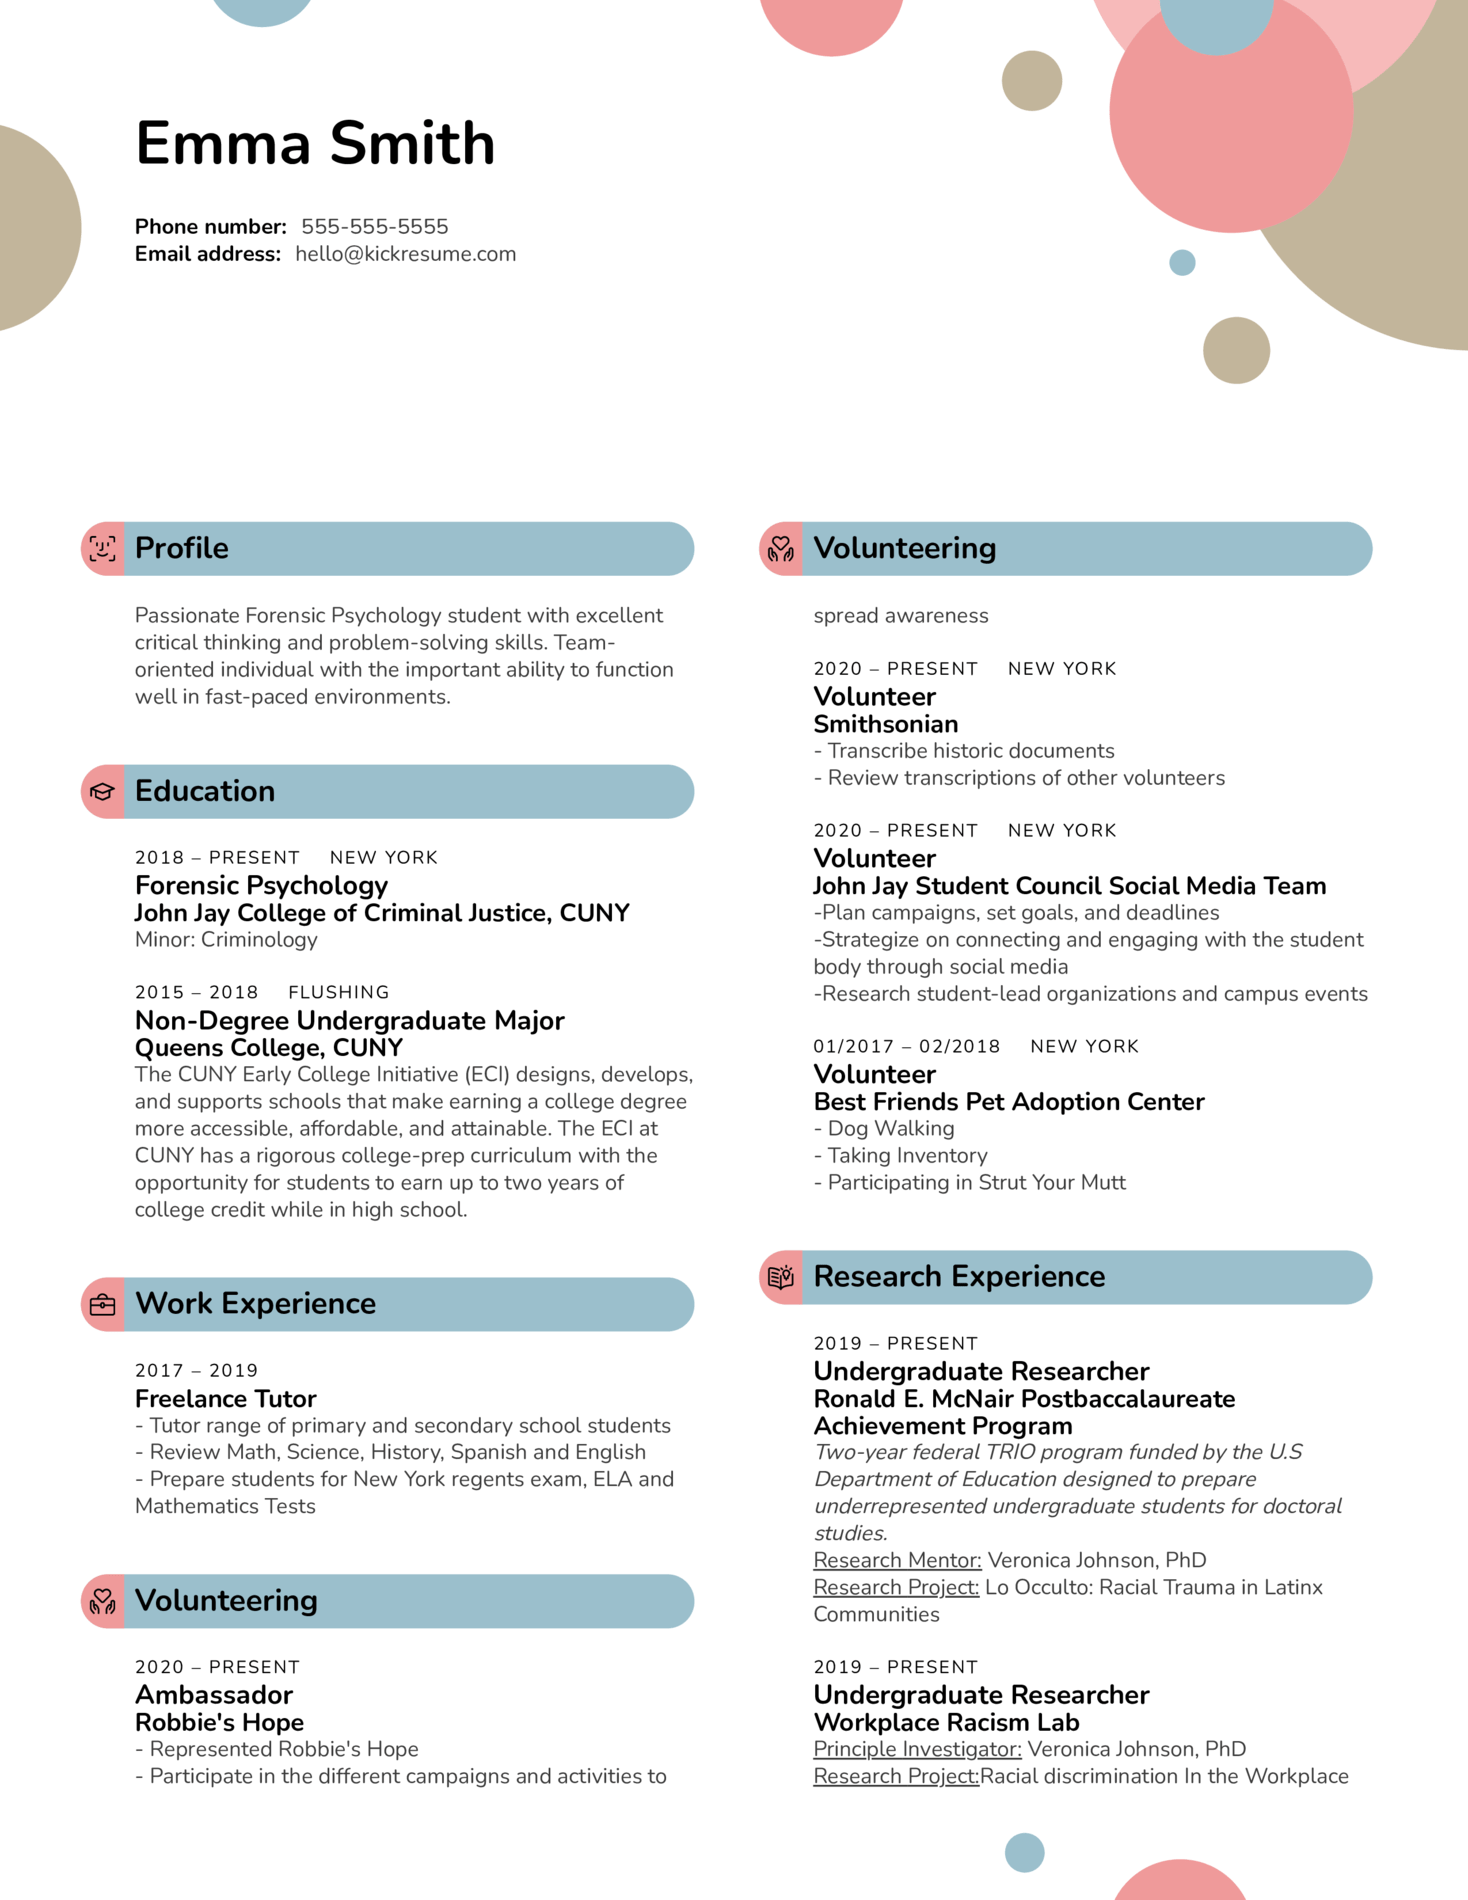 Research Extern at American Foundation for Suicide Prevention Resume Sample (Part 1)